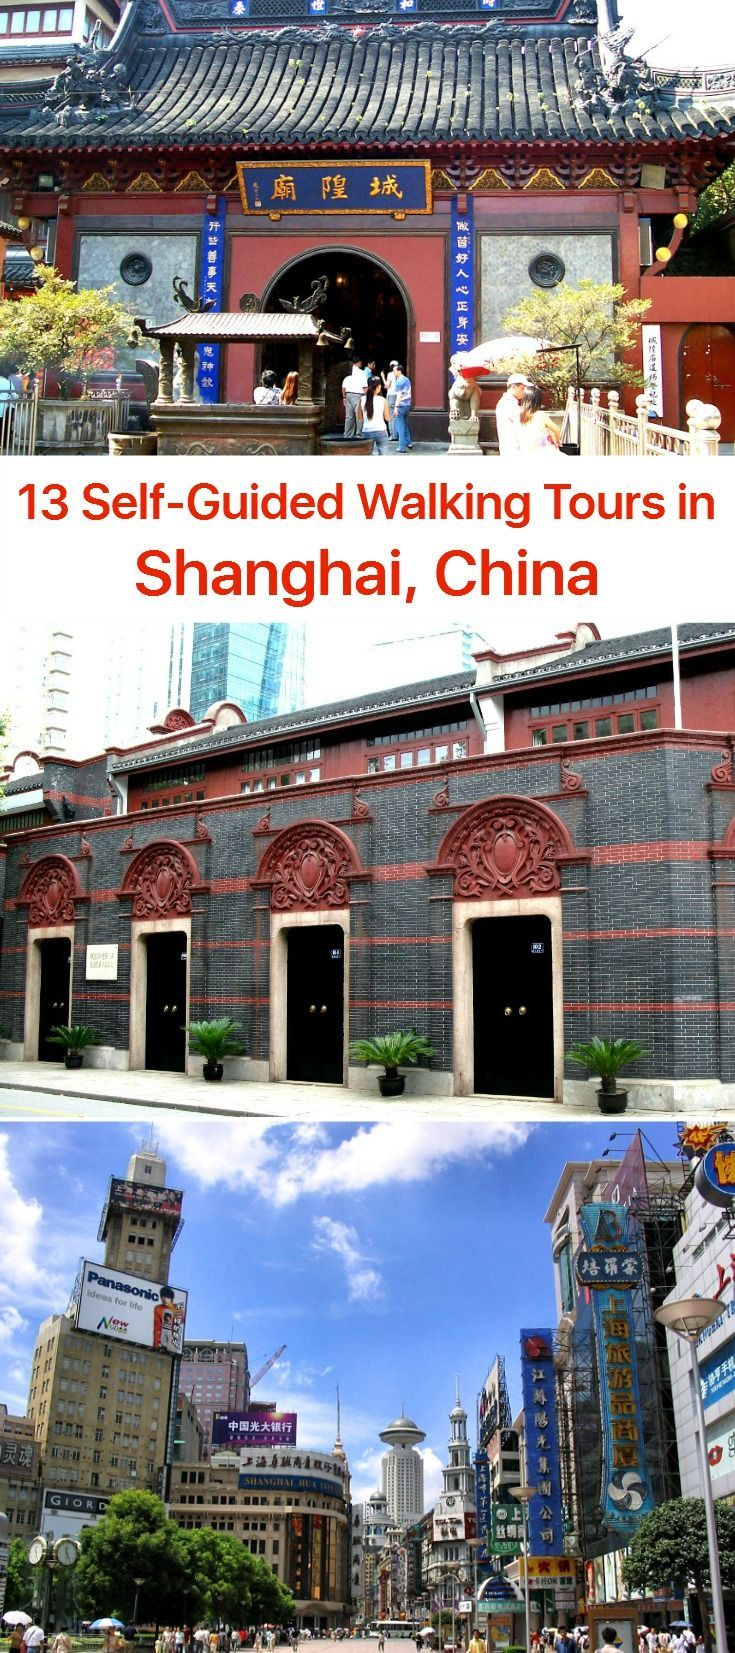 China's biggest and most populous city, Shanghai is a huge metropolis and a major financial, administrative, and trading center. The downtown part of the city bears traces of the colonial past manifested in the well-preserved buildings overlooking the landmark seafront promenade, the Bund. The modern city skyline is crowned by the futuristic looking Shanghai Tower and the Oriental Pearl TV Tower with its signature pink spheres.